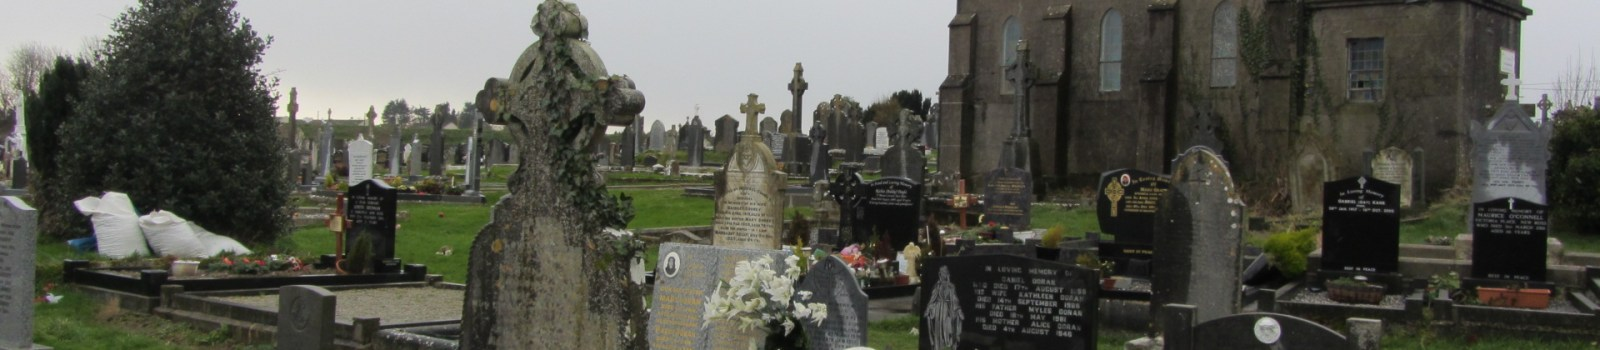 St. Stephen's Cemetery, New Ross